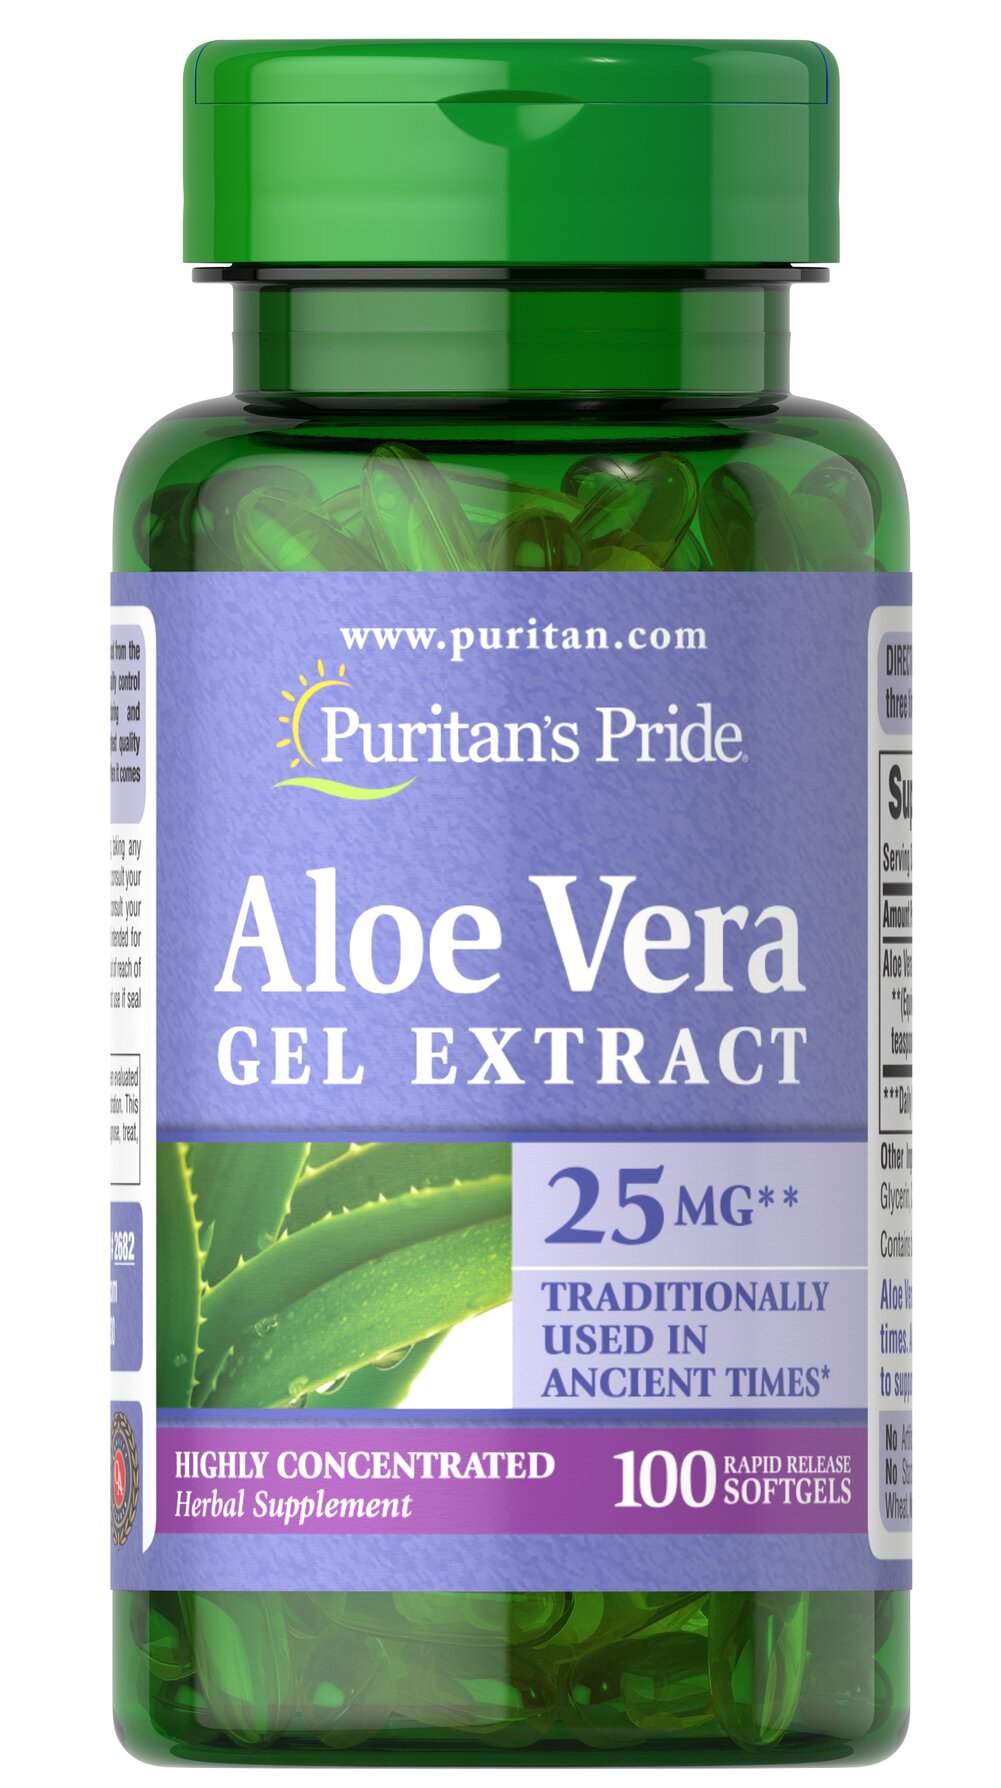 Aloe Vera Extract 25 mg  100 Softgels 25 mg $10.49